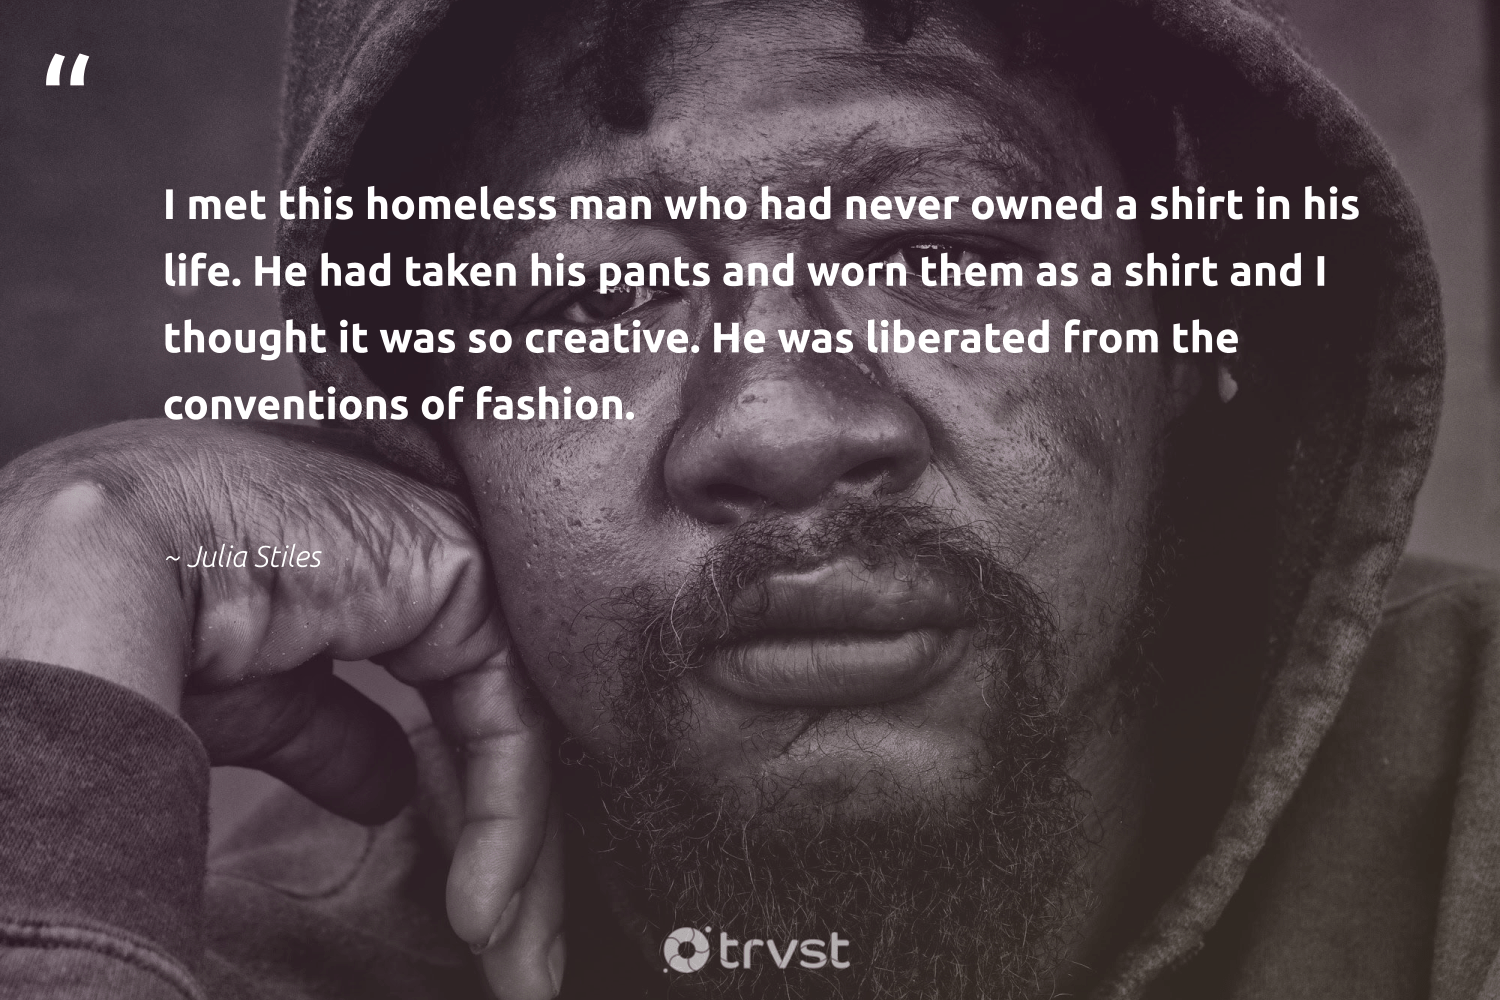 """""""I met this homeless man who had never owned a shirt in his life. He had taken his pants and worn them as a shirt and I thought it was so creative. He was liberated from the conventions of fashion.""""  - Julia Stiles #trvst #quotes #homelessness #homeless #creative #equalrights #sustainablefutures #dogood #weareallone #makeadifference #gogreen #equalopportunity"""